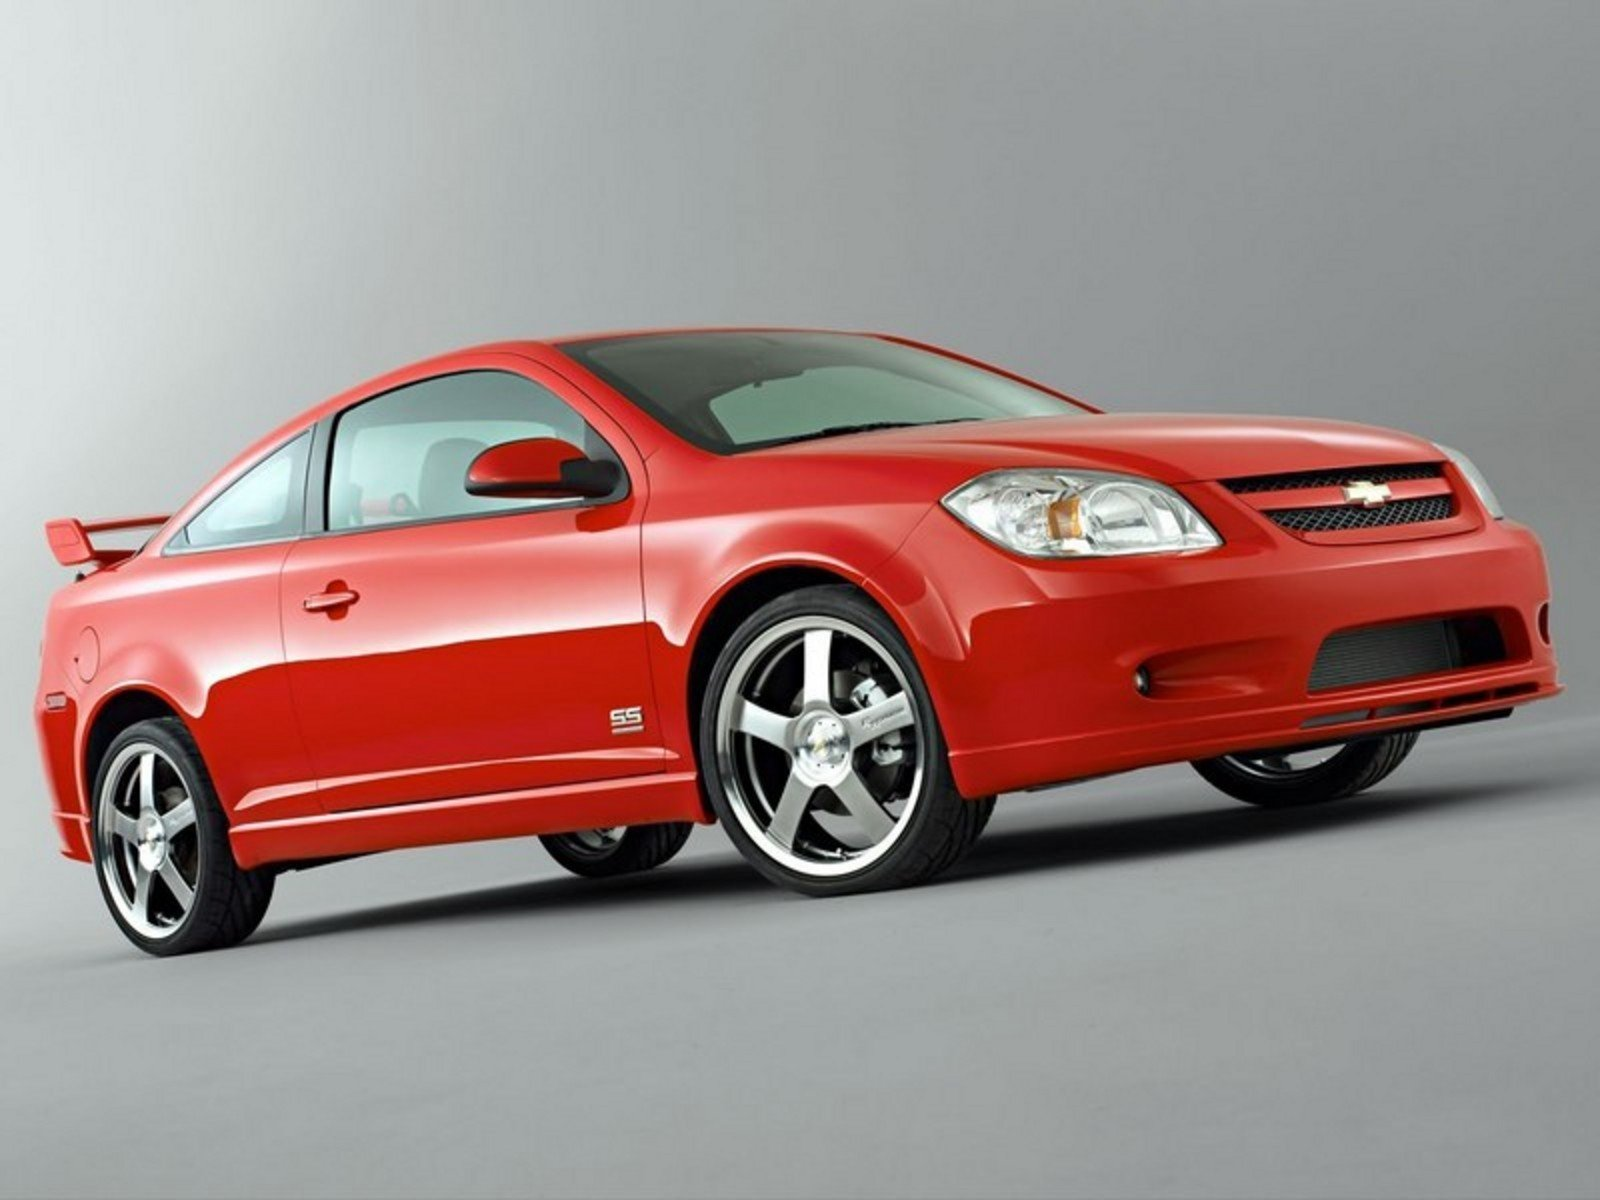 2006 chevrolet cobalt ss supercharged coupe picture 84793 car review top speed. Black Bedroom Furniture Sets. Home Design Ideas